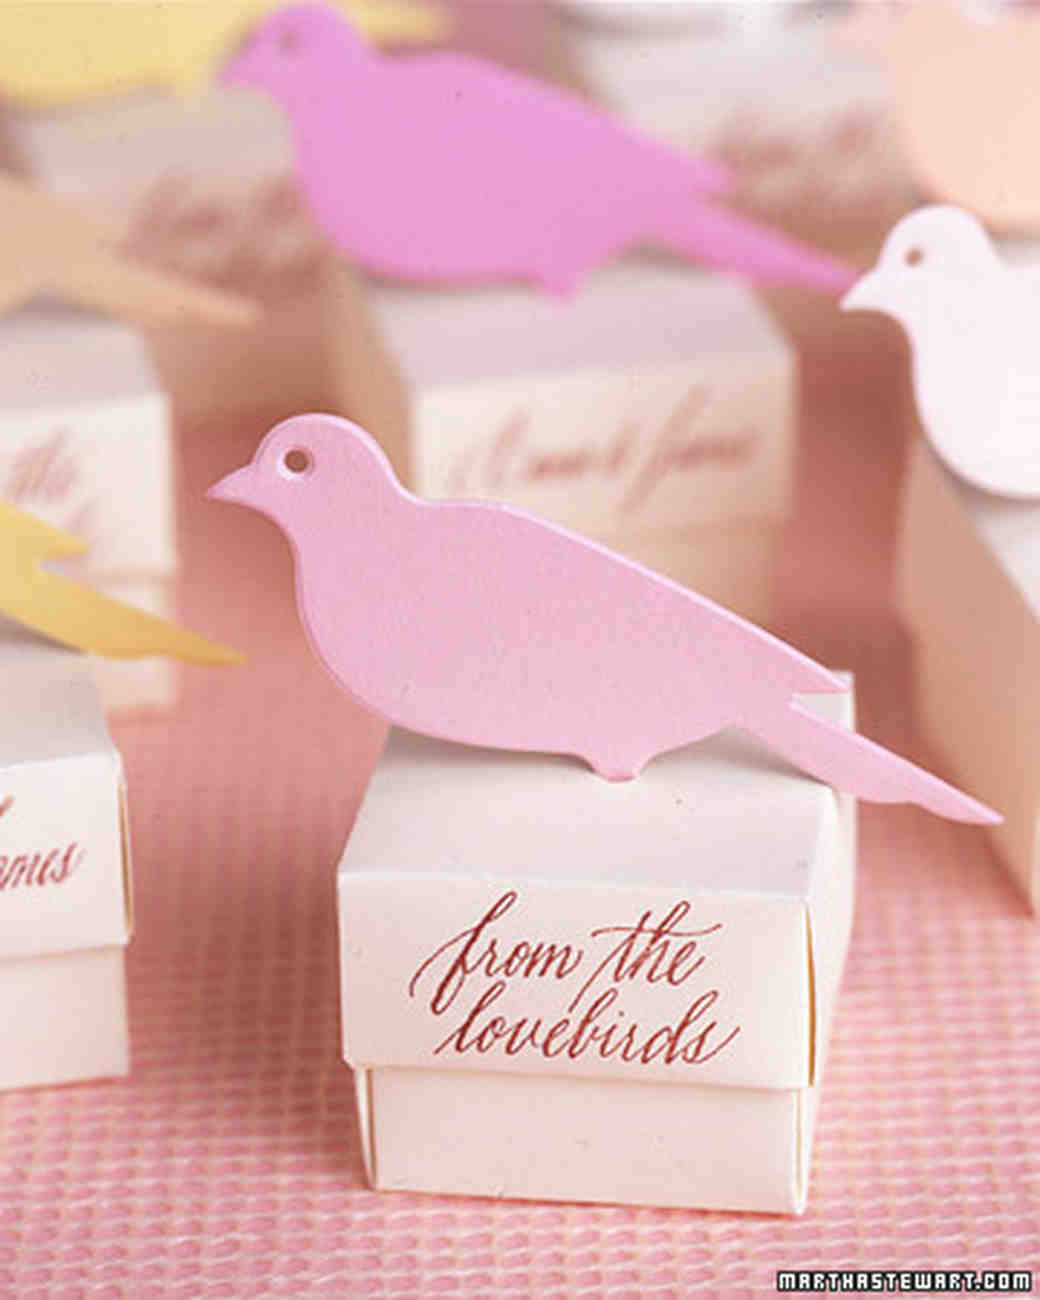 Bird-Inspired Wedding Ideas | Martha Stewart Weddings